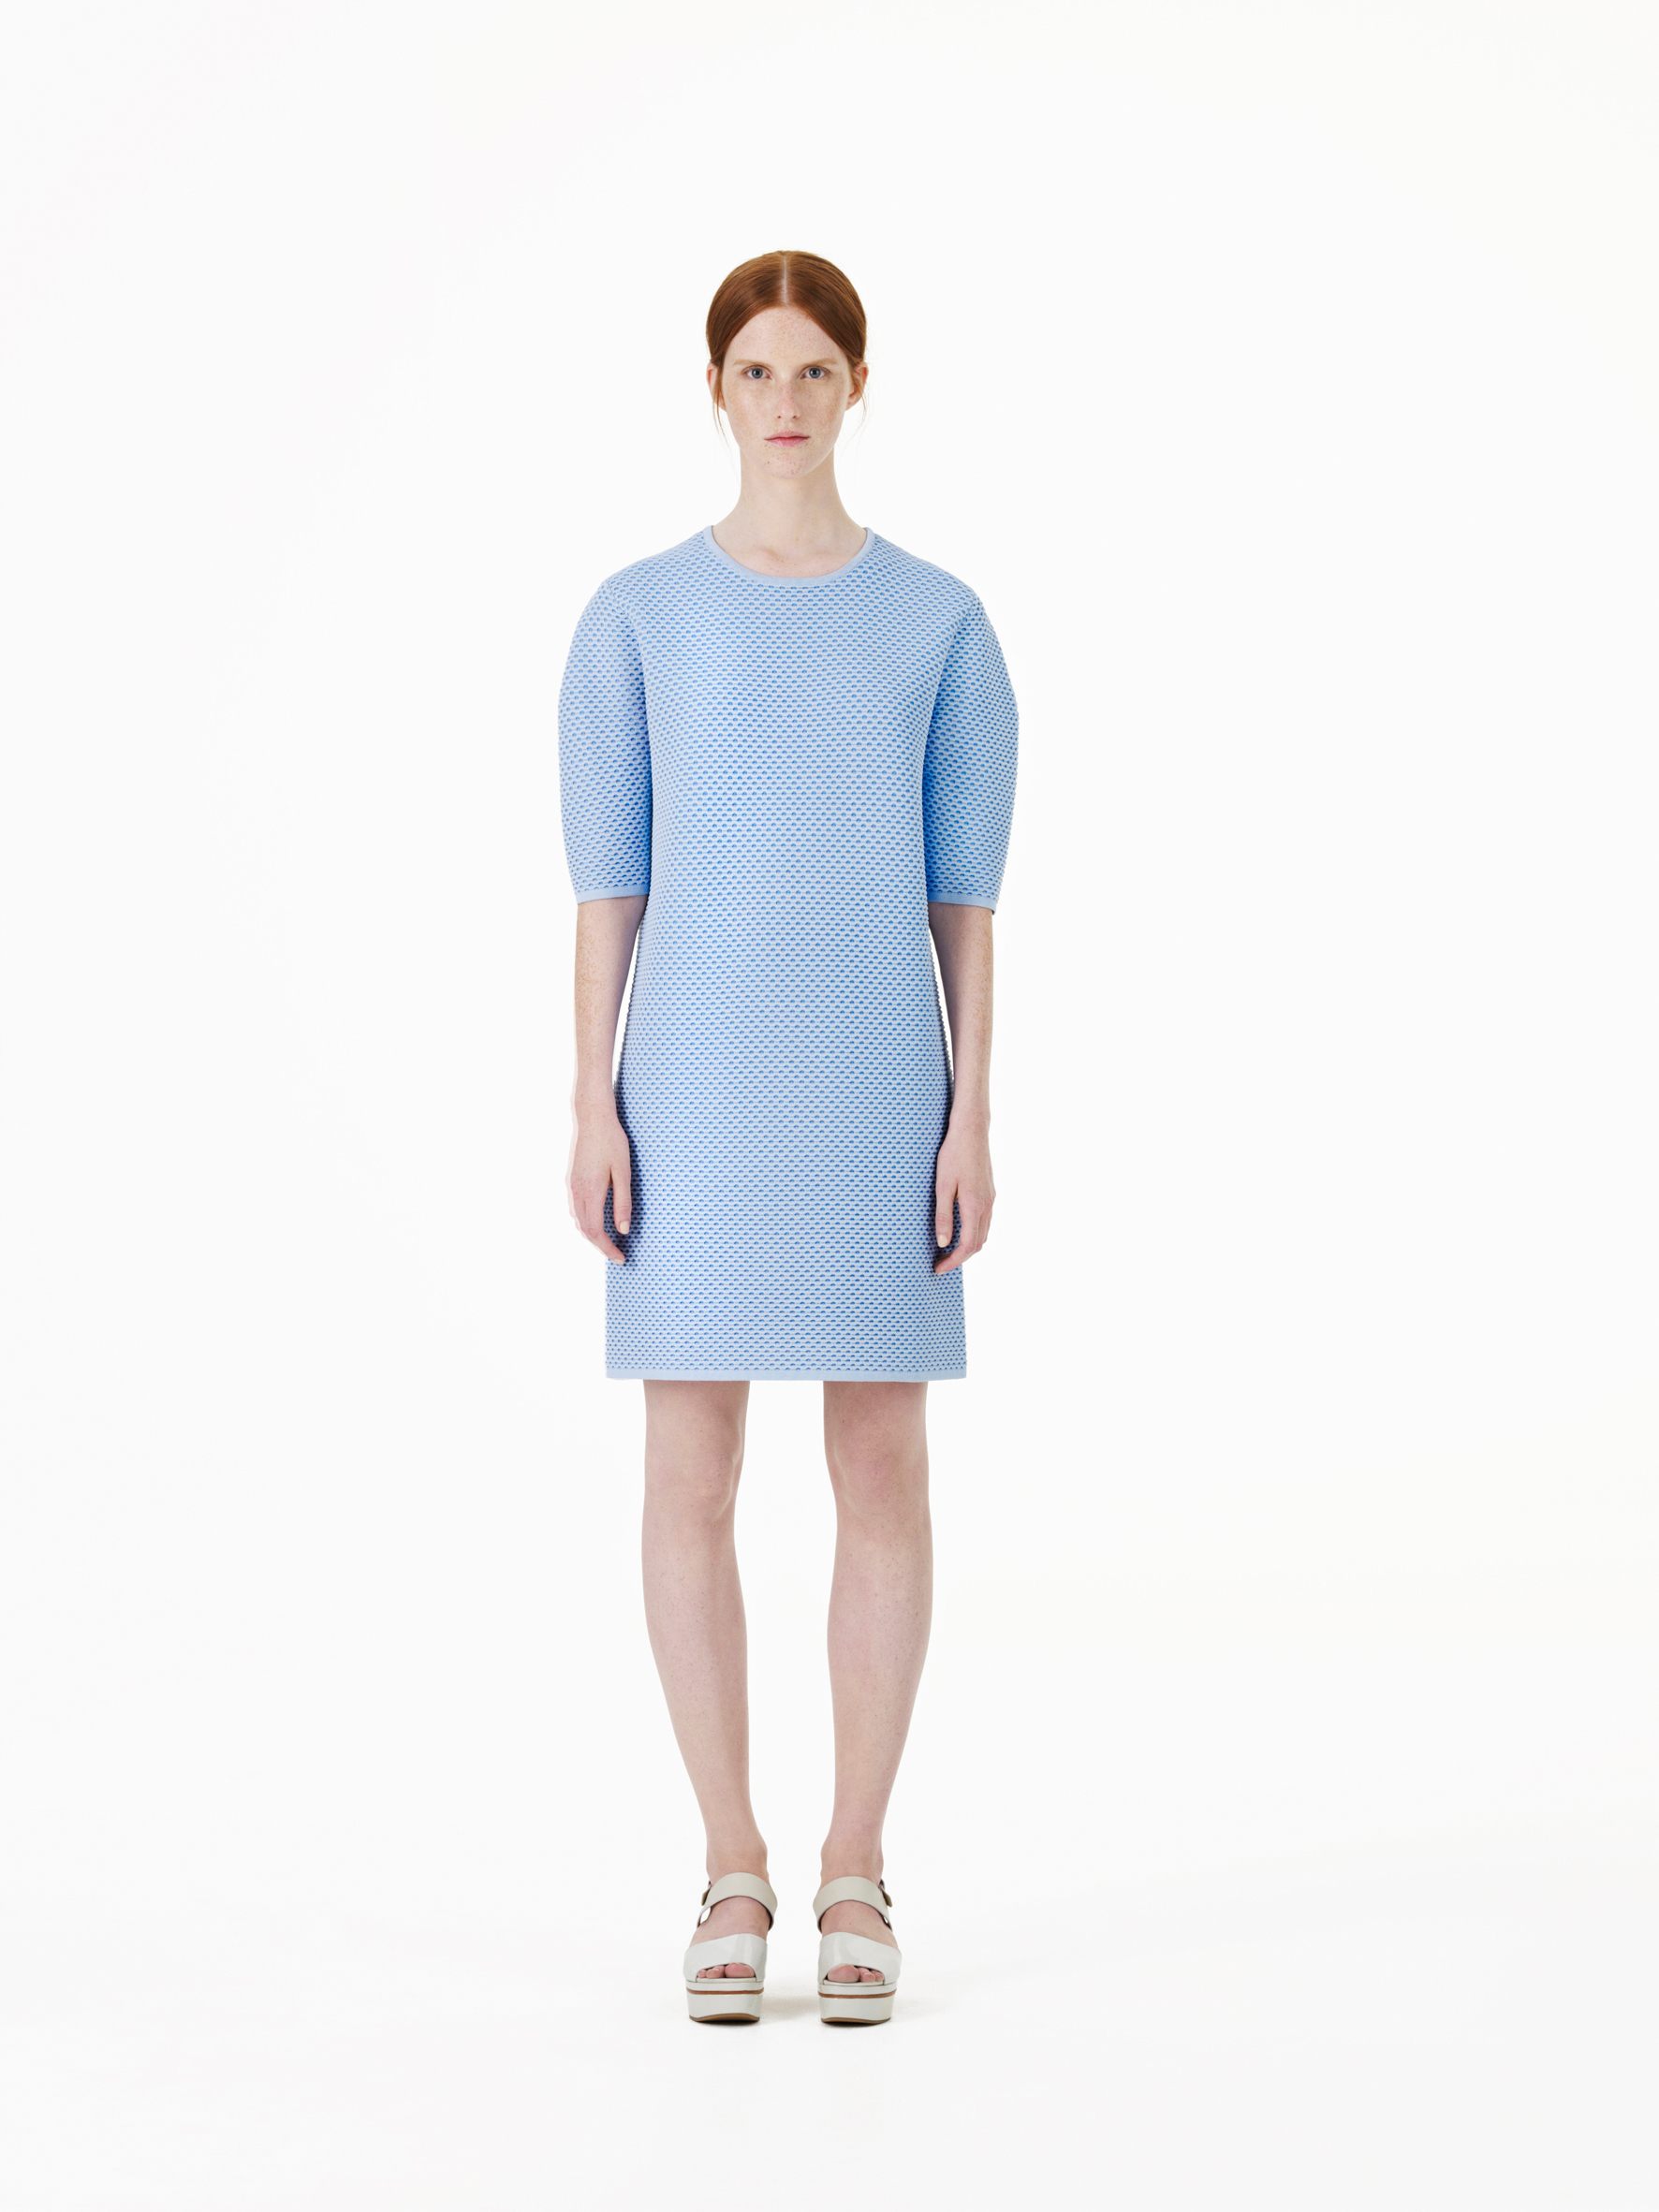 COS_SS14_WOMENS_08_lowres